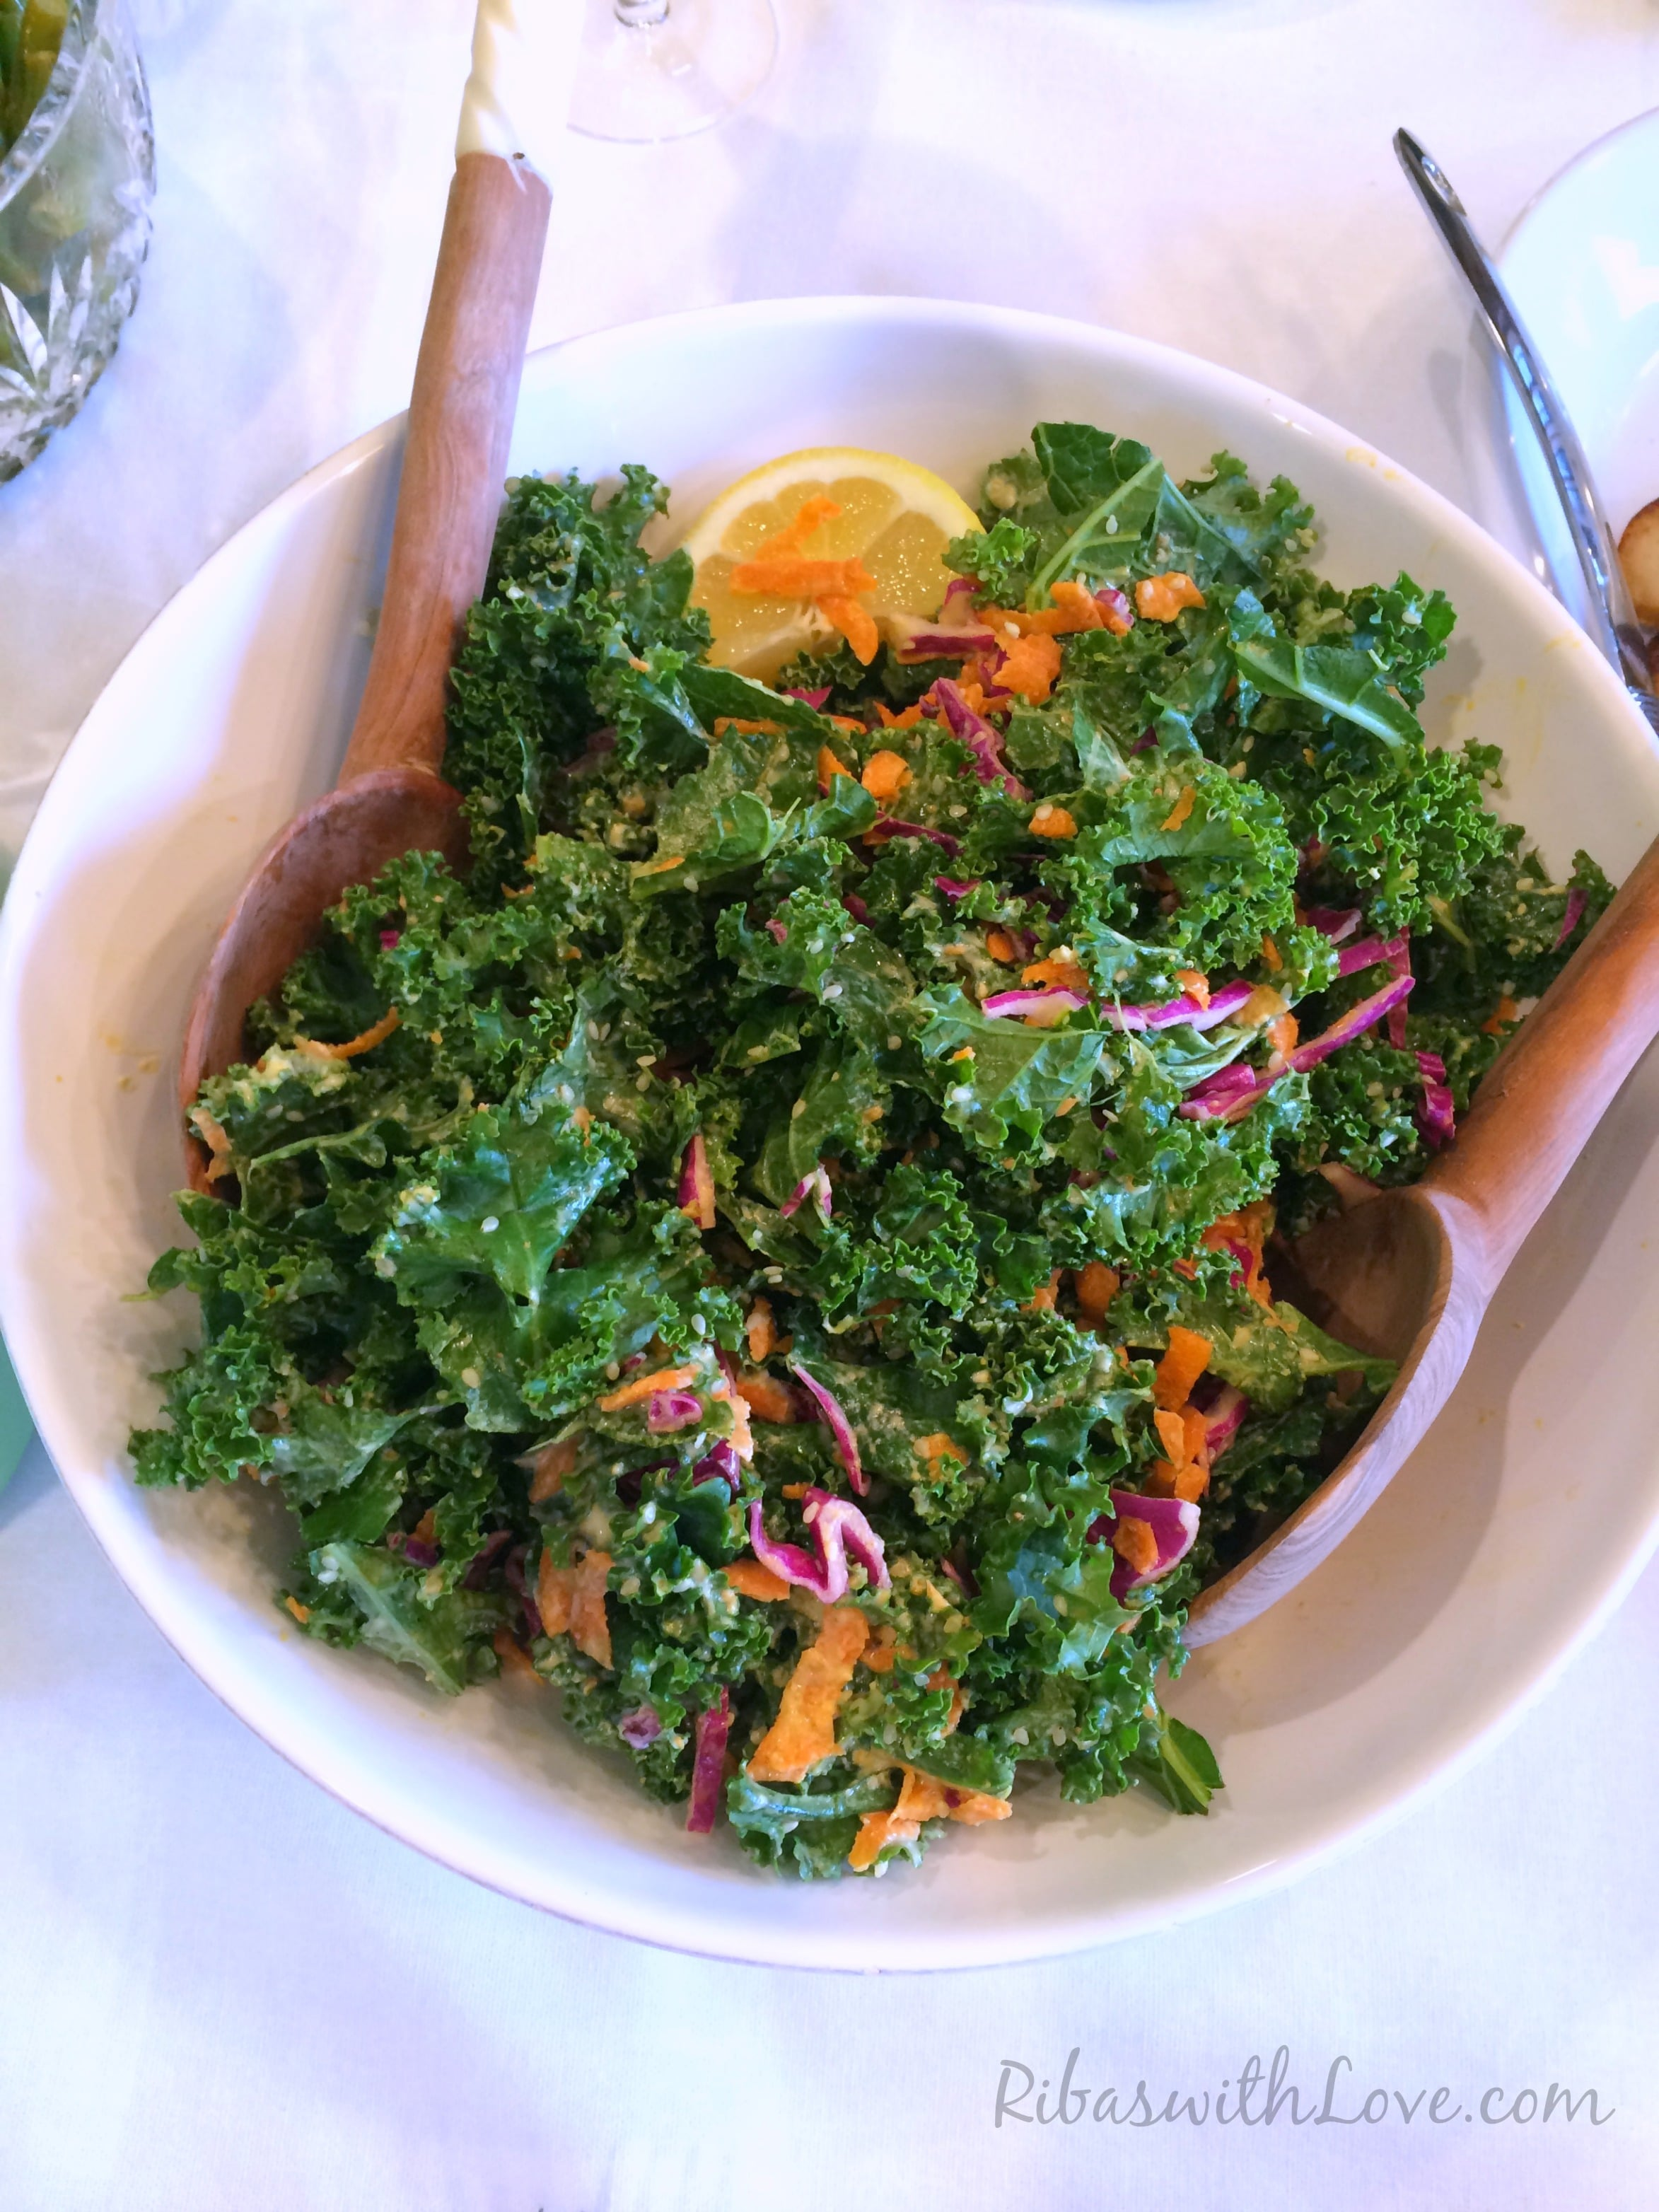 http://gardeninthekitchen.com/kale-salad-with-sweet-creamy-dressing/